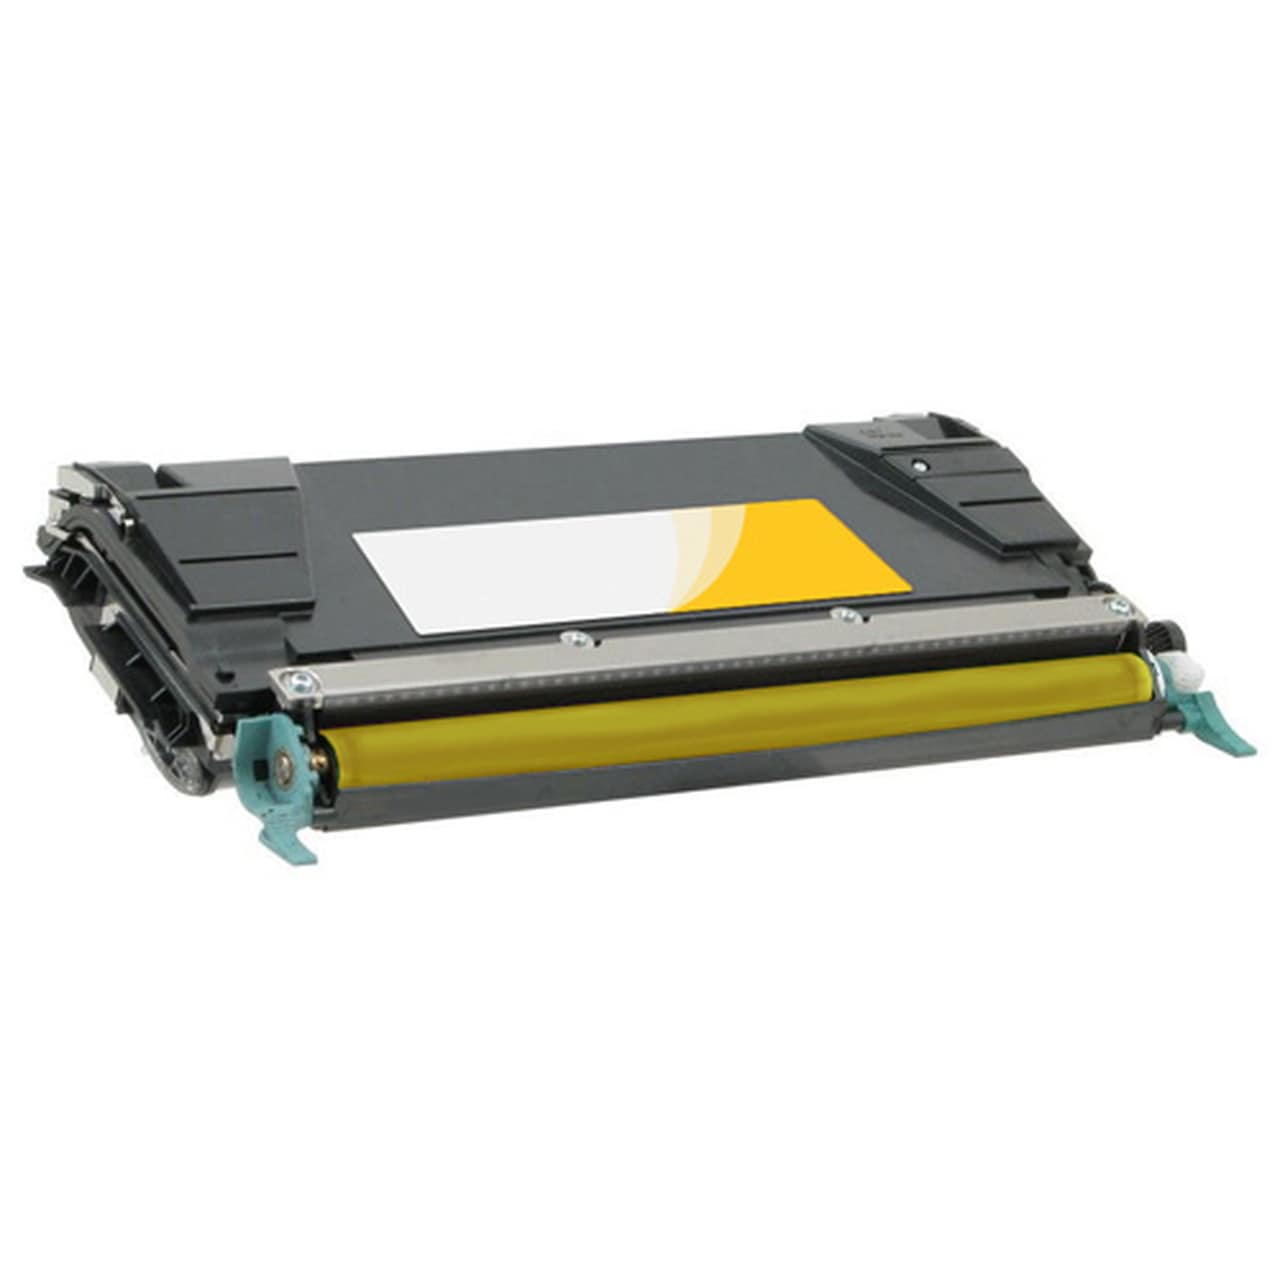 C5240YH Toner Cartridge - Lexmark Remanufactured (Yellow)